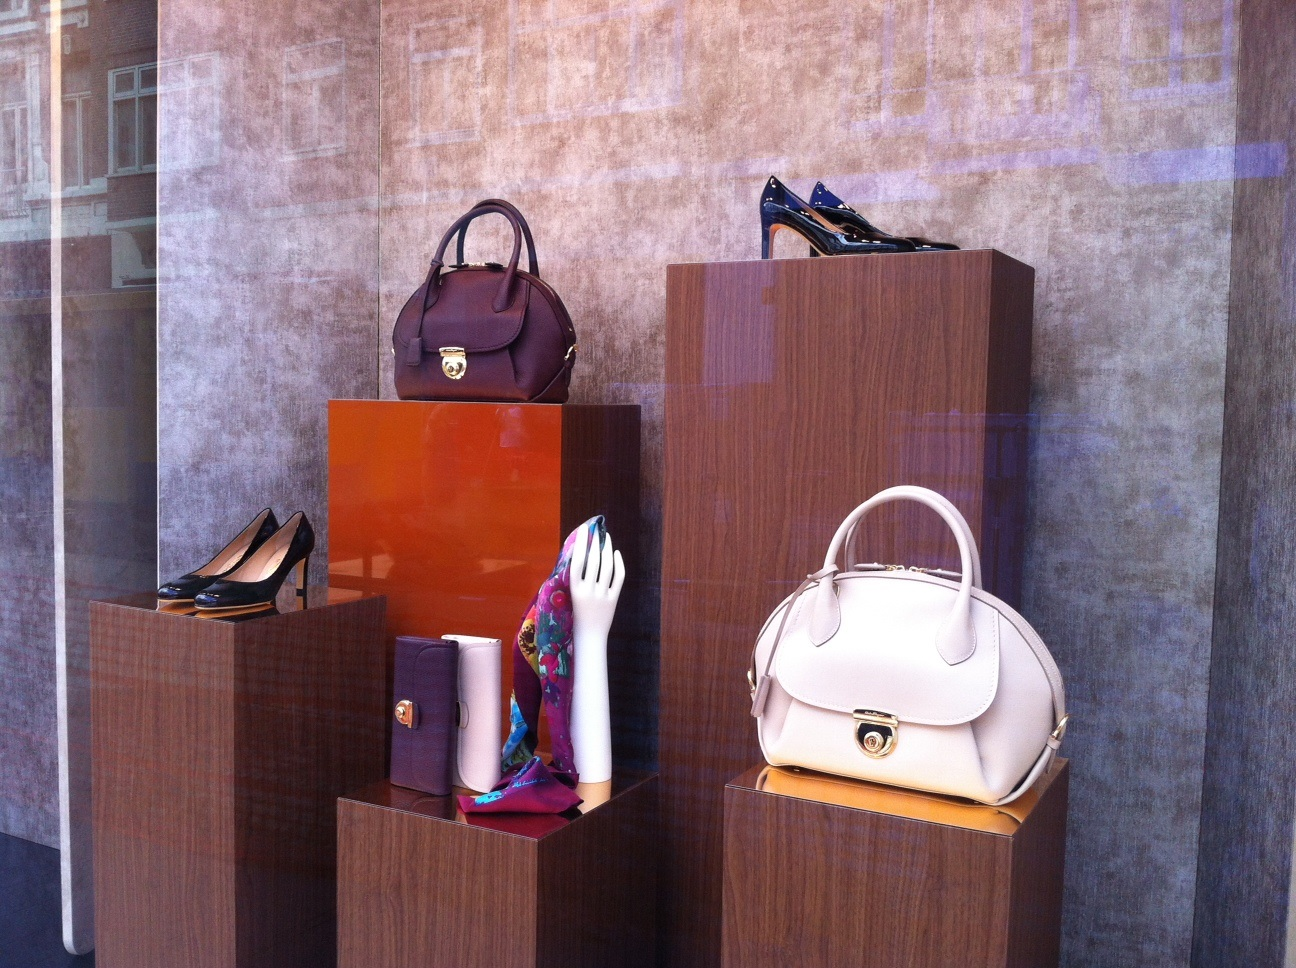 P.C. Hooftstraat: luxury shopping in Amsterdam, Louis Vuitton, Chanel, Gucci, Fendi, Cartier